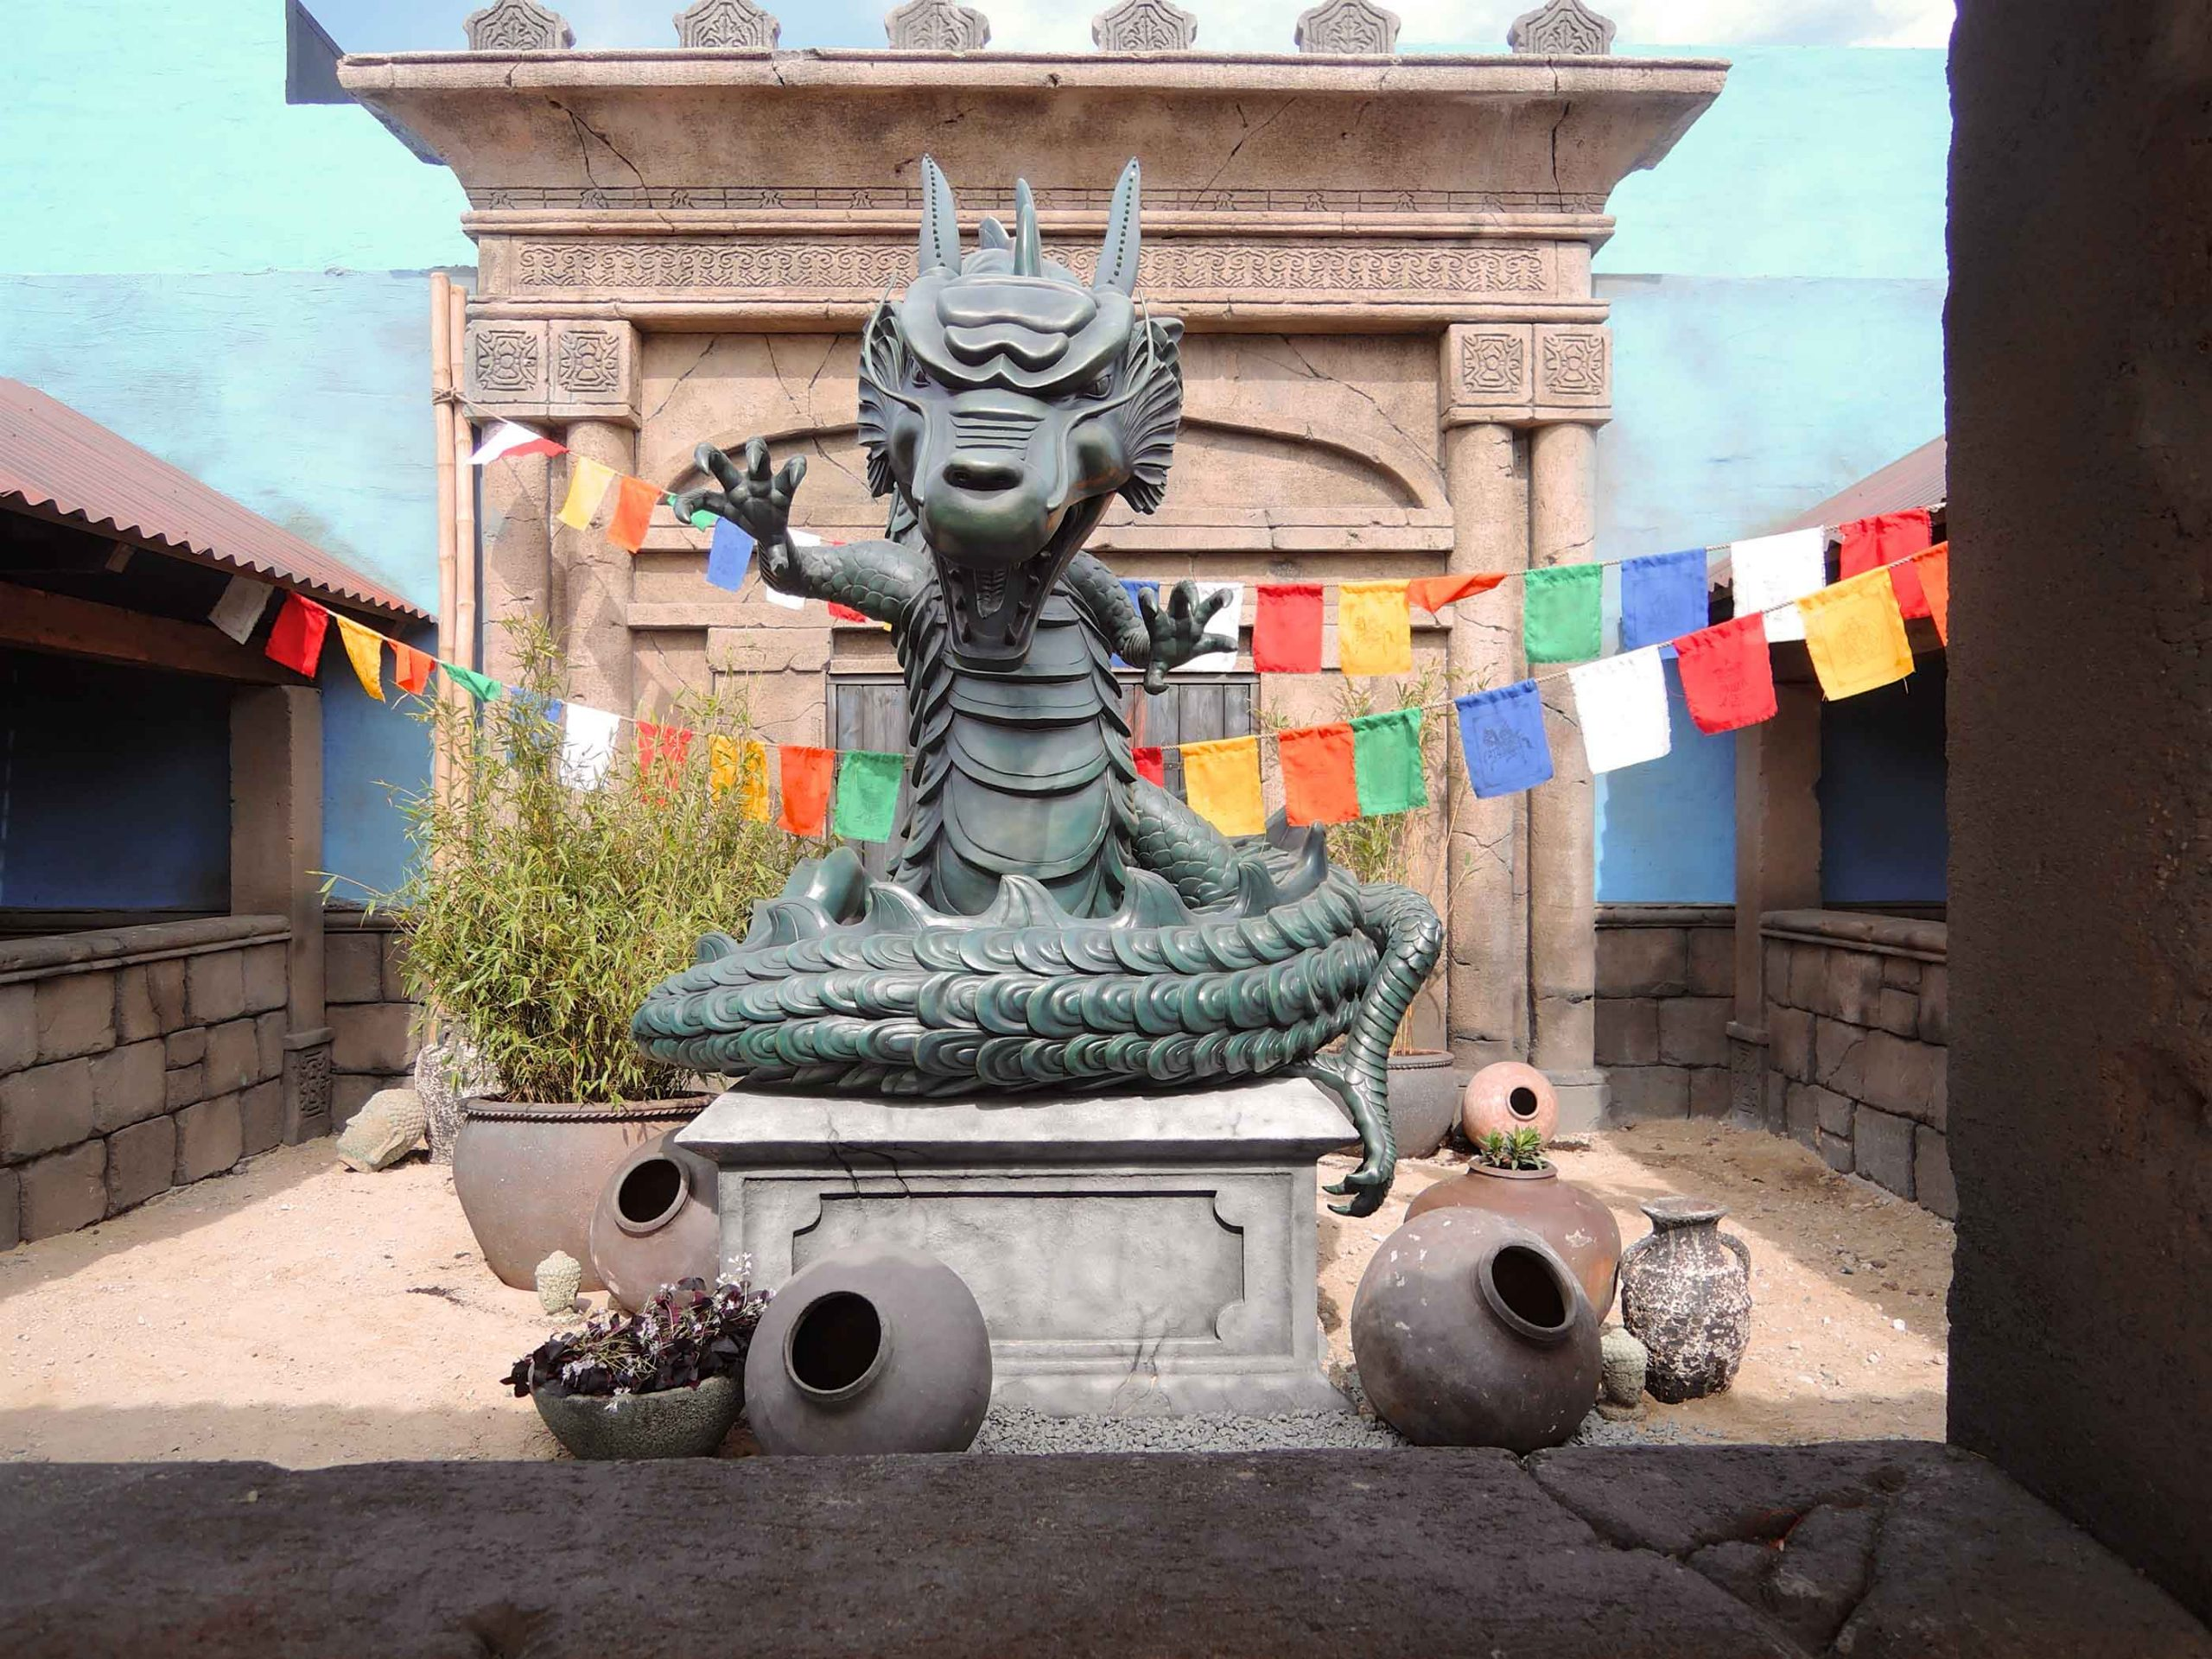 The dragon at the queue line of the Dragekongen at the Wild Asia Area at Djurs Sommerland